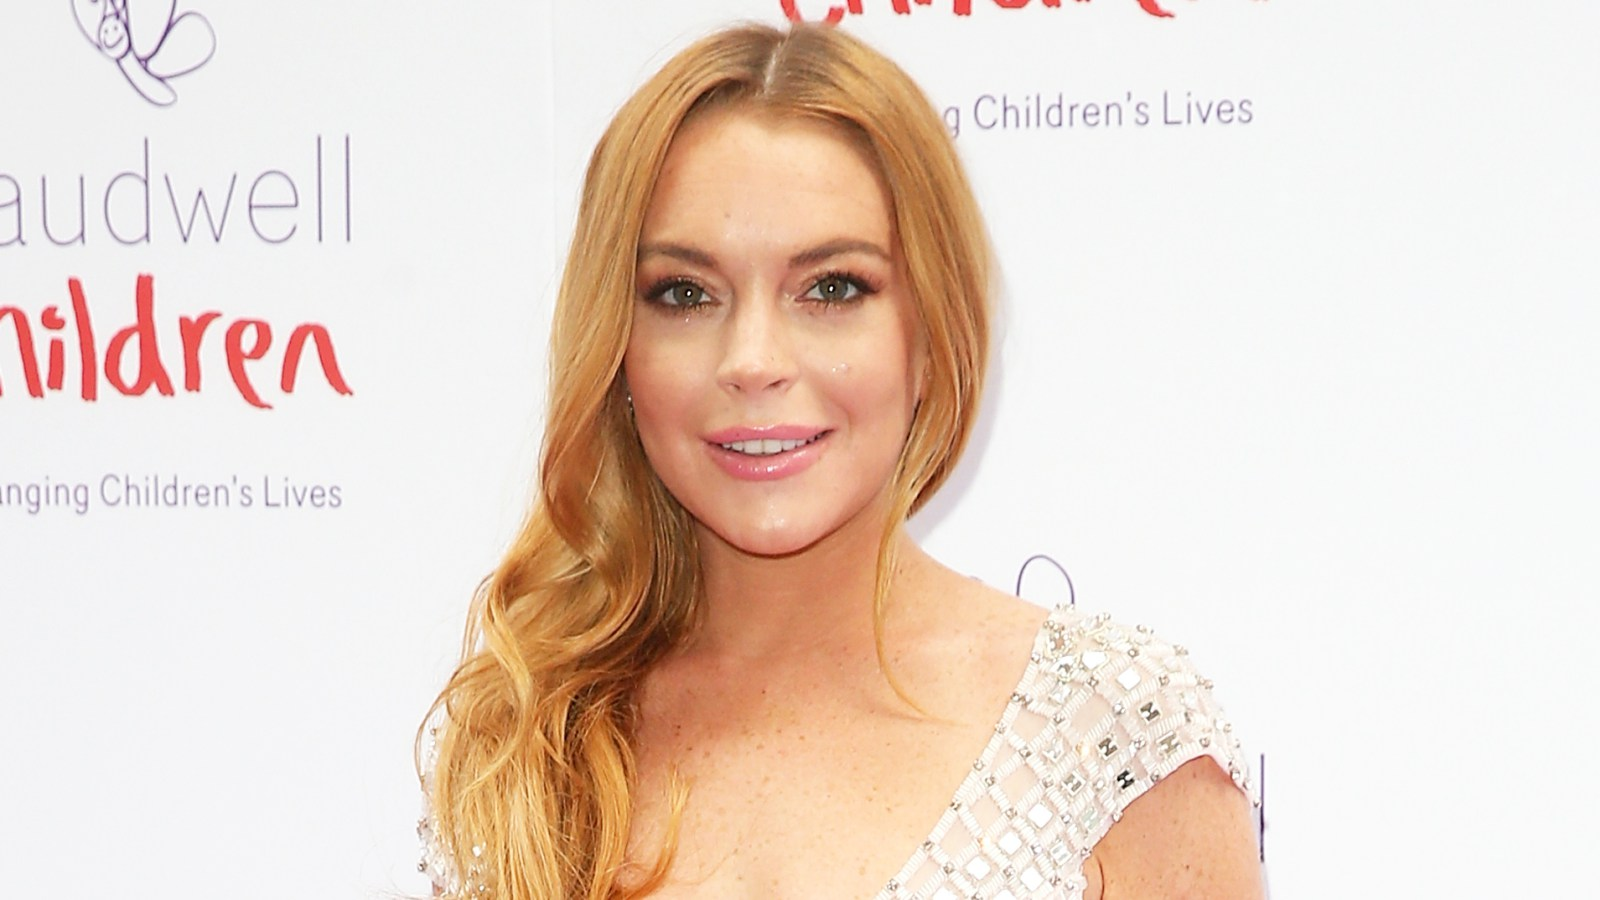 4 Things We Learned From Lindsay Lohan